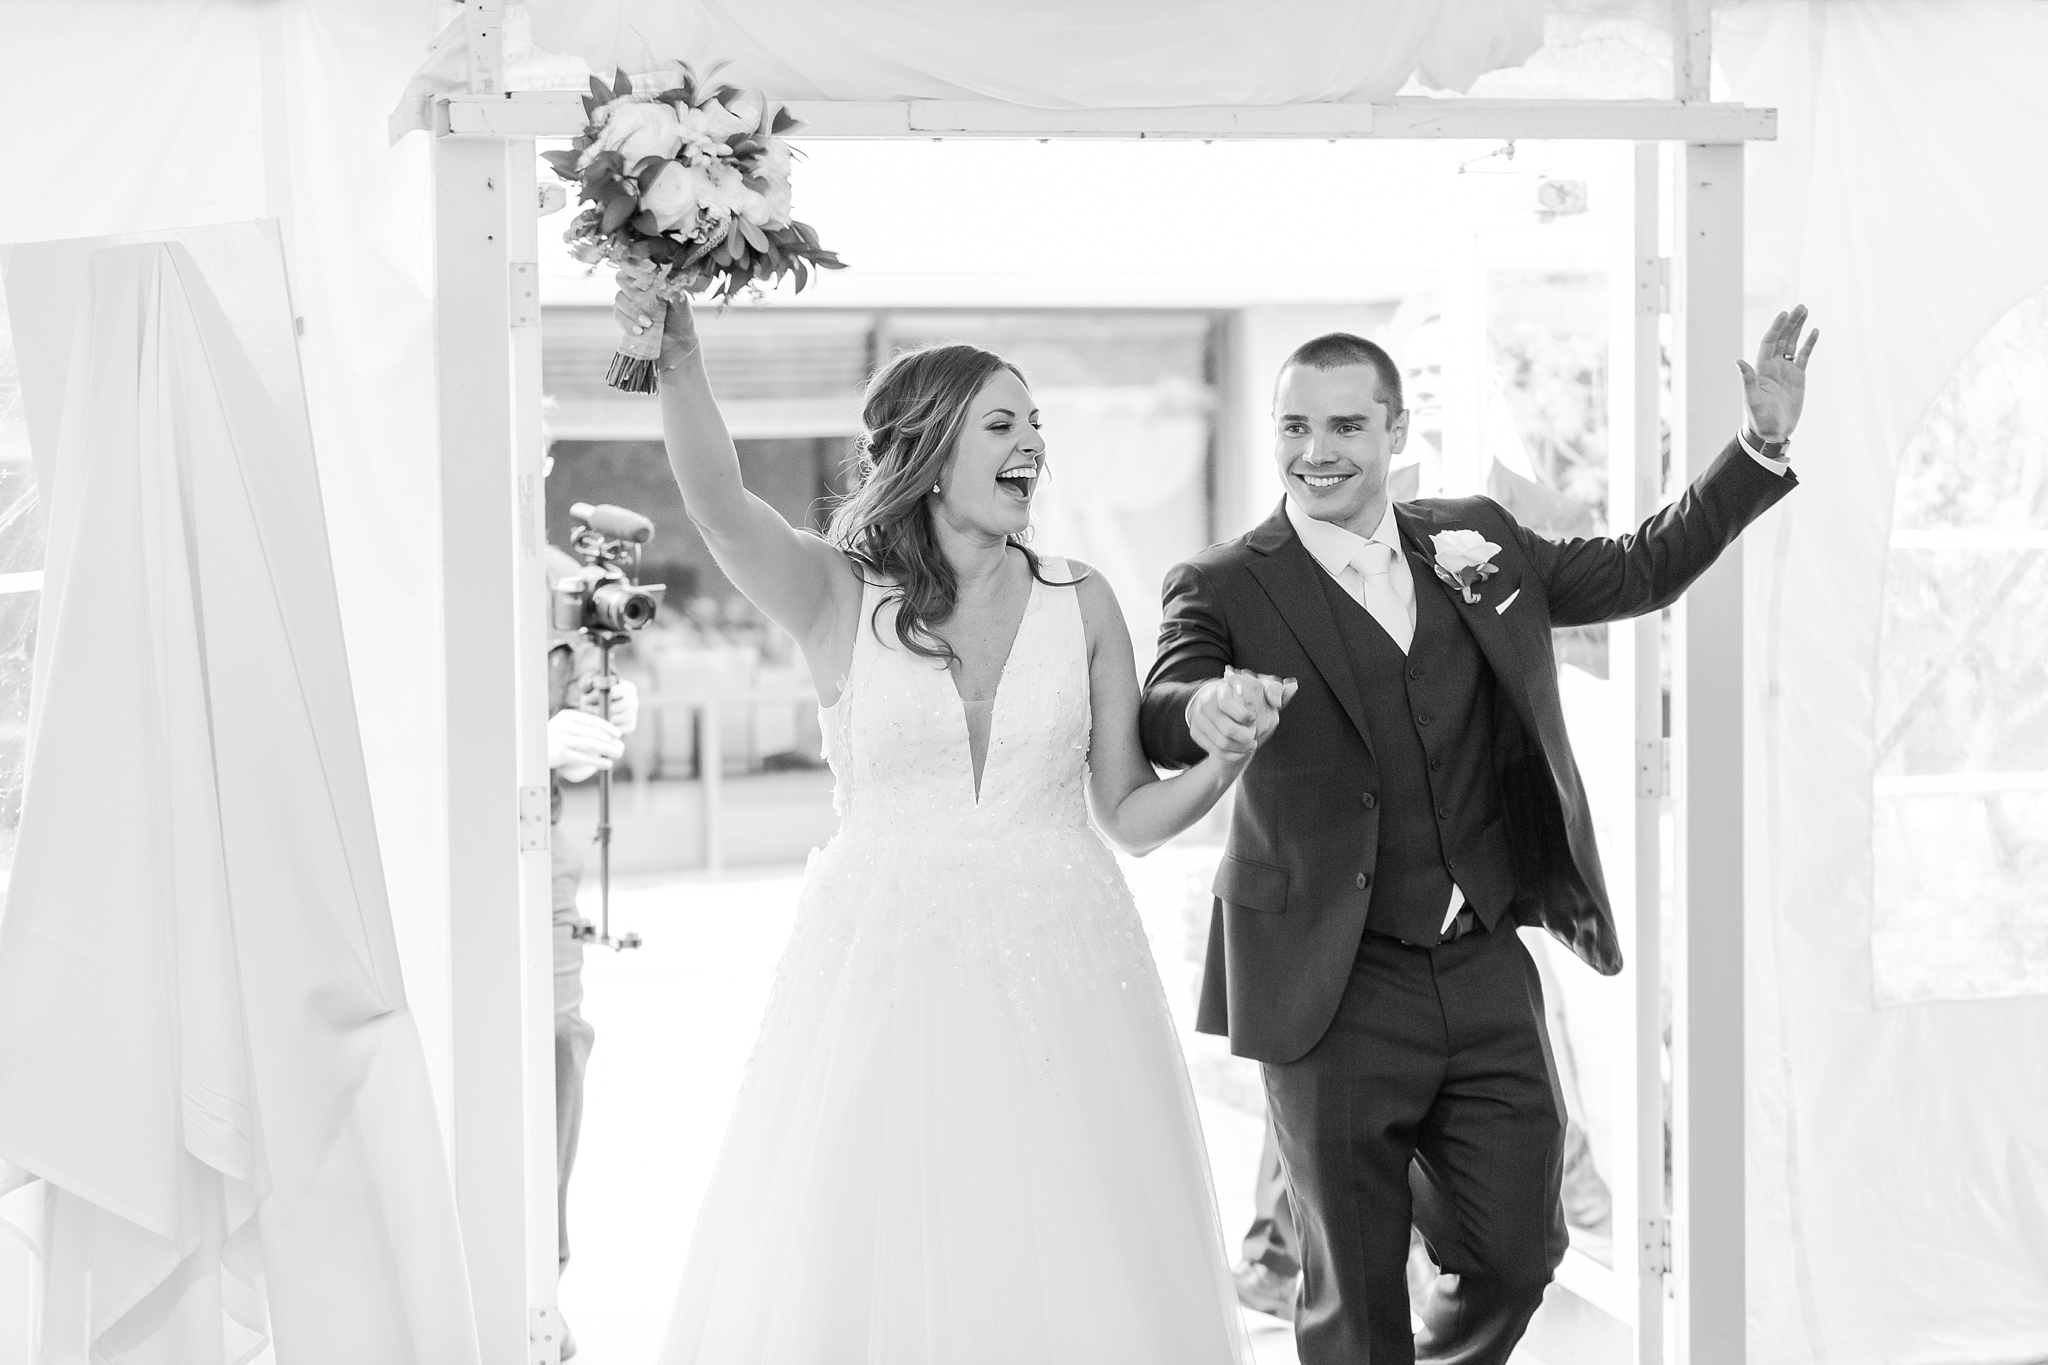 joyful-candid-laid-back-wedding-photos-in-ann-arbor-michigan-and-at-the-eagle-crest-golf-resort-by-courtney-carolyn-photography_0087.jpg